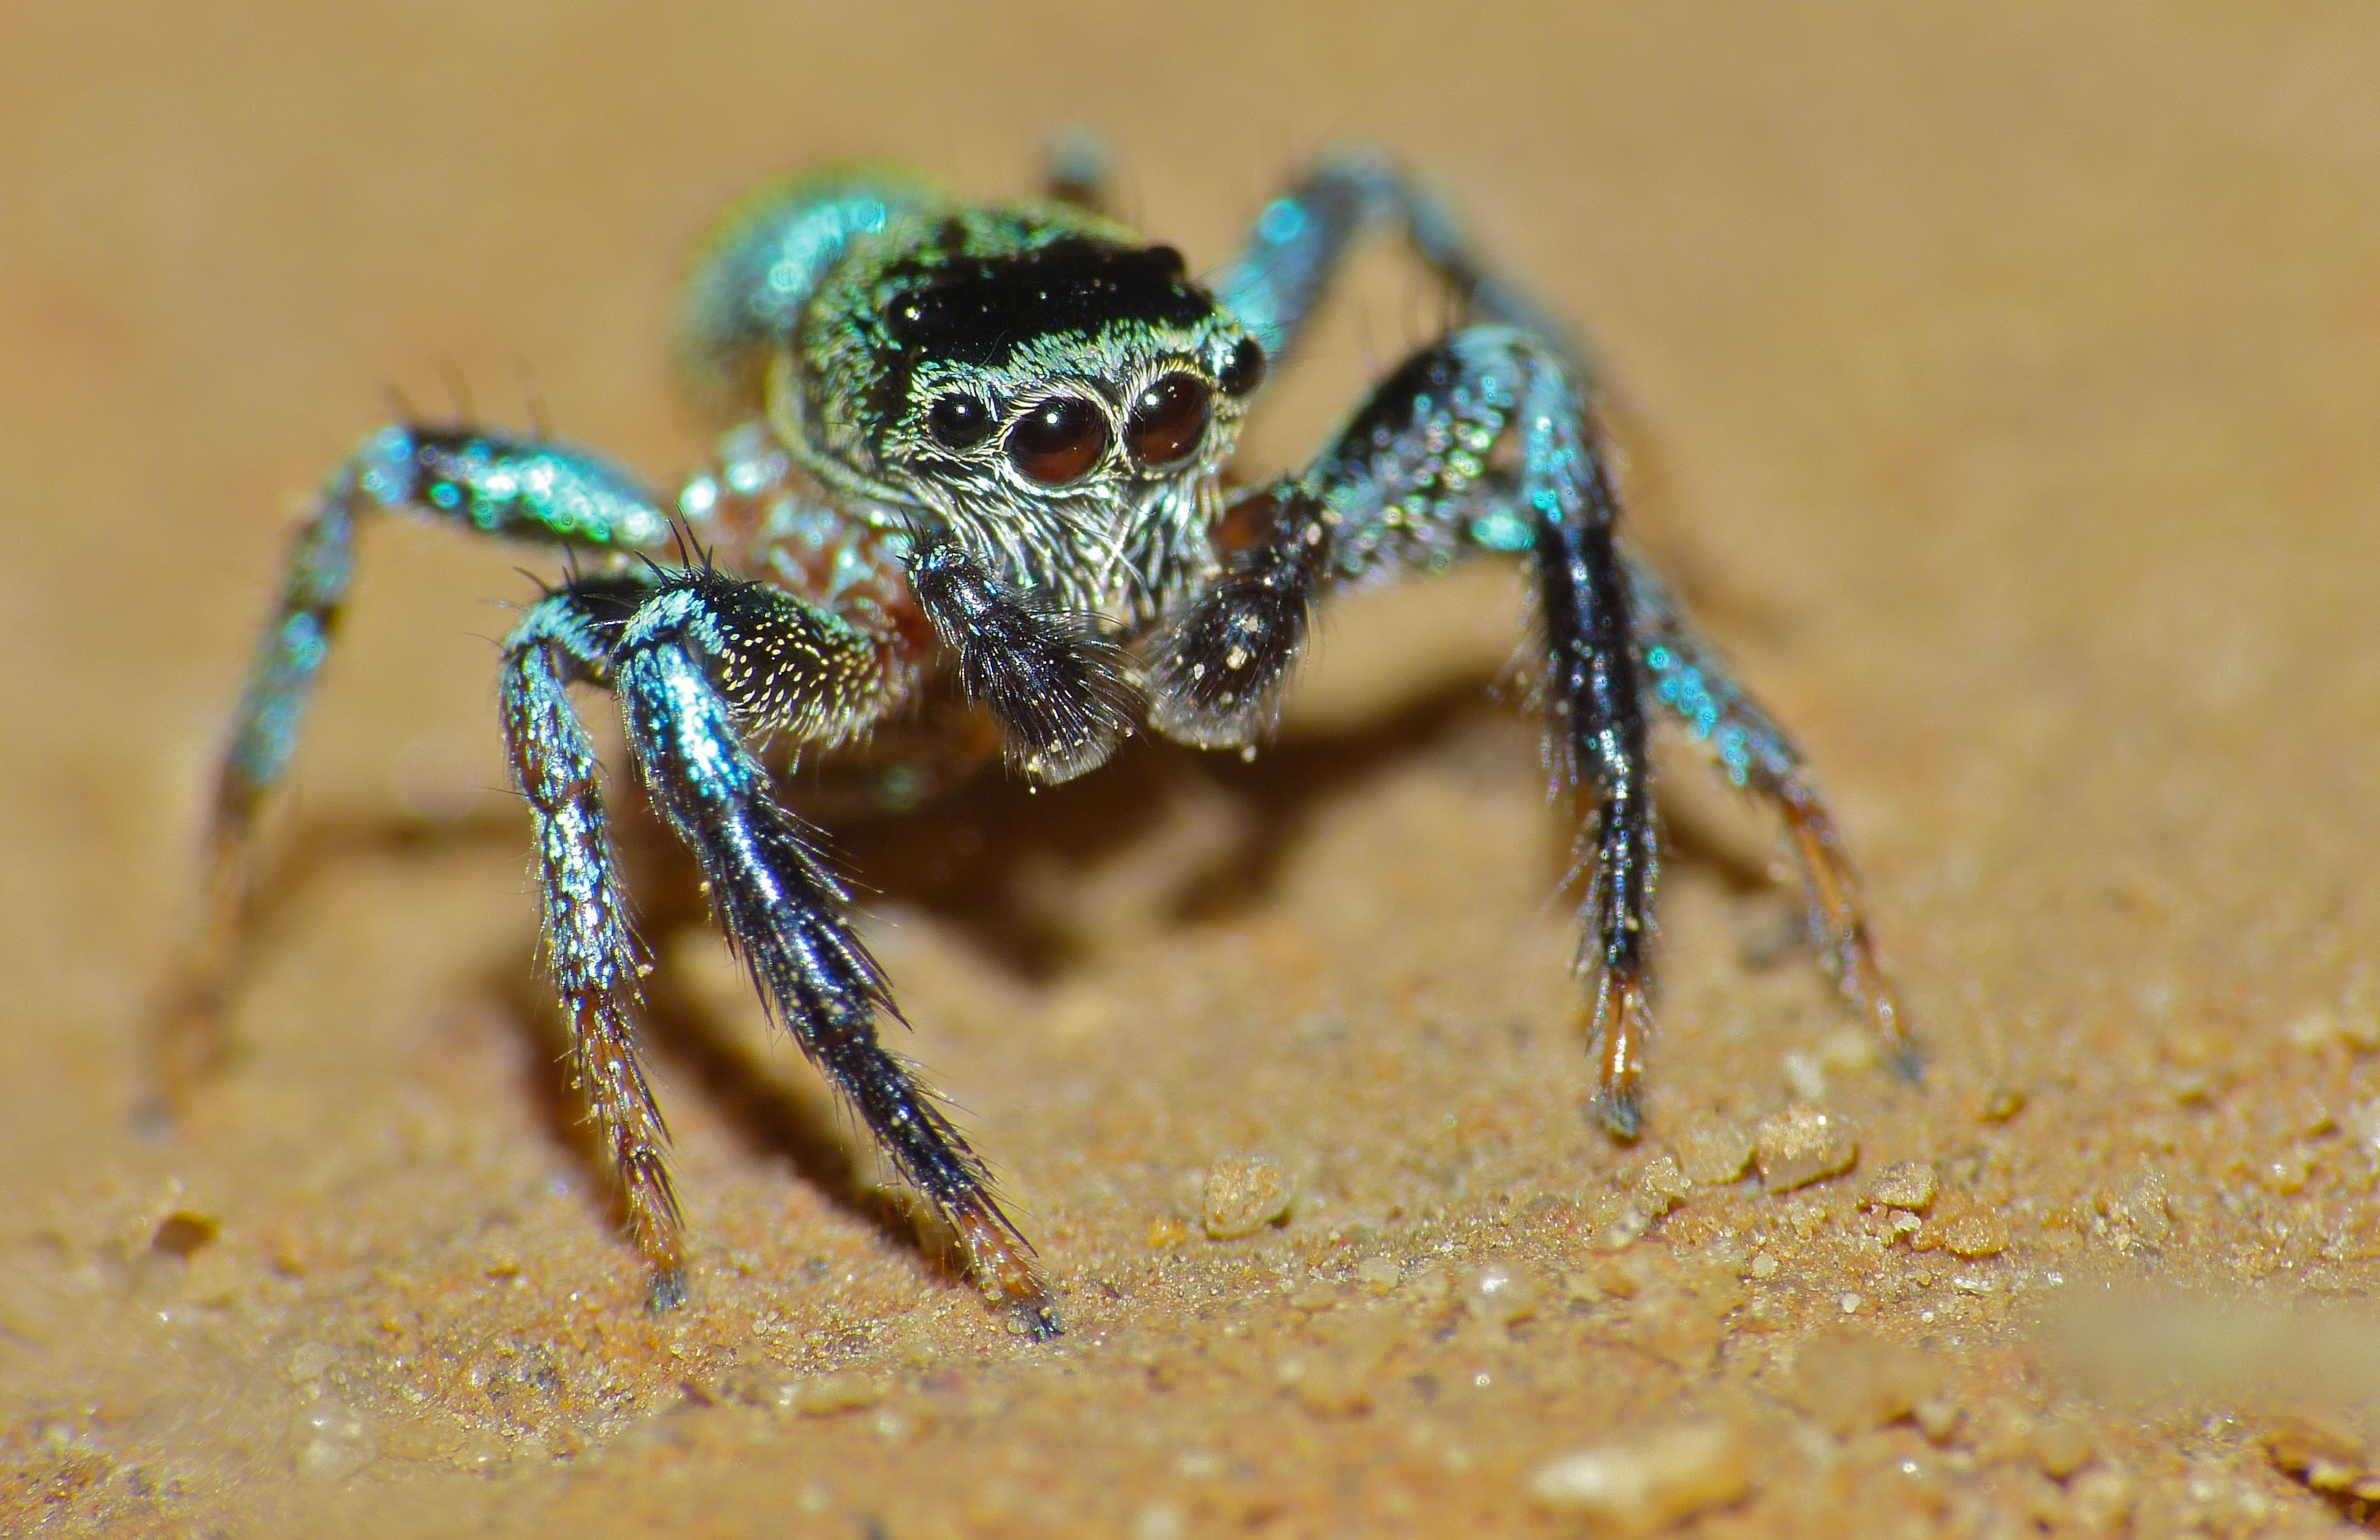 Jumping Spiders Interesting Thing Of The Day